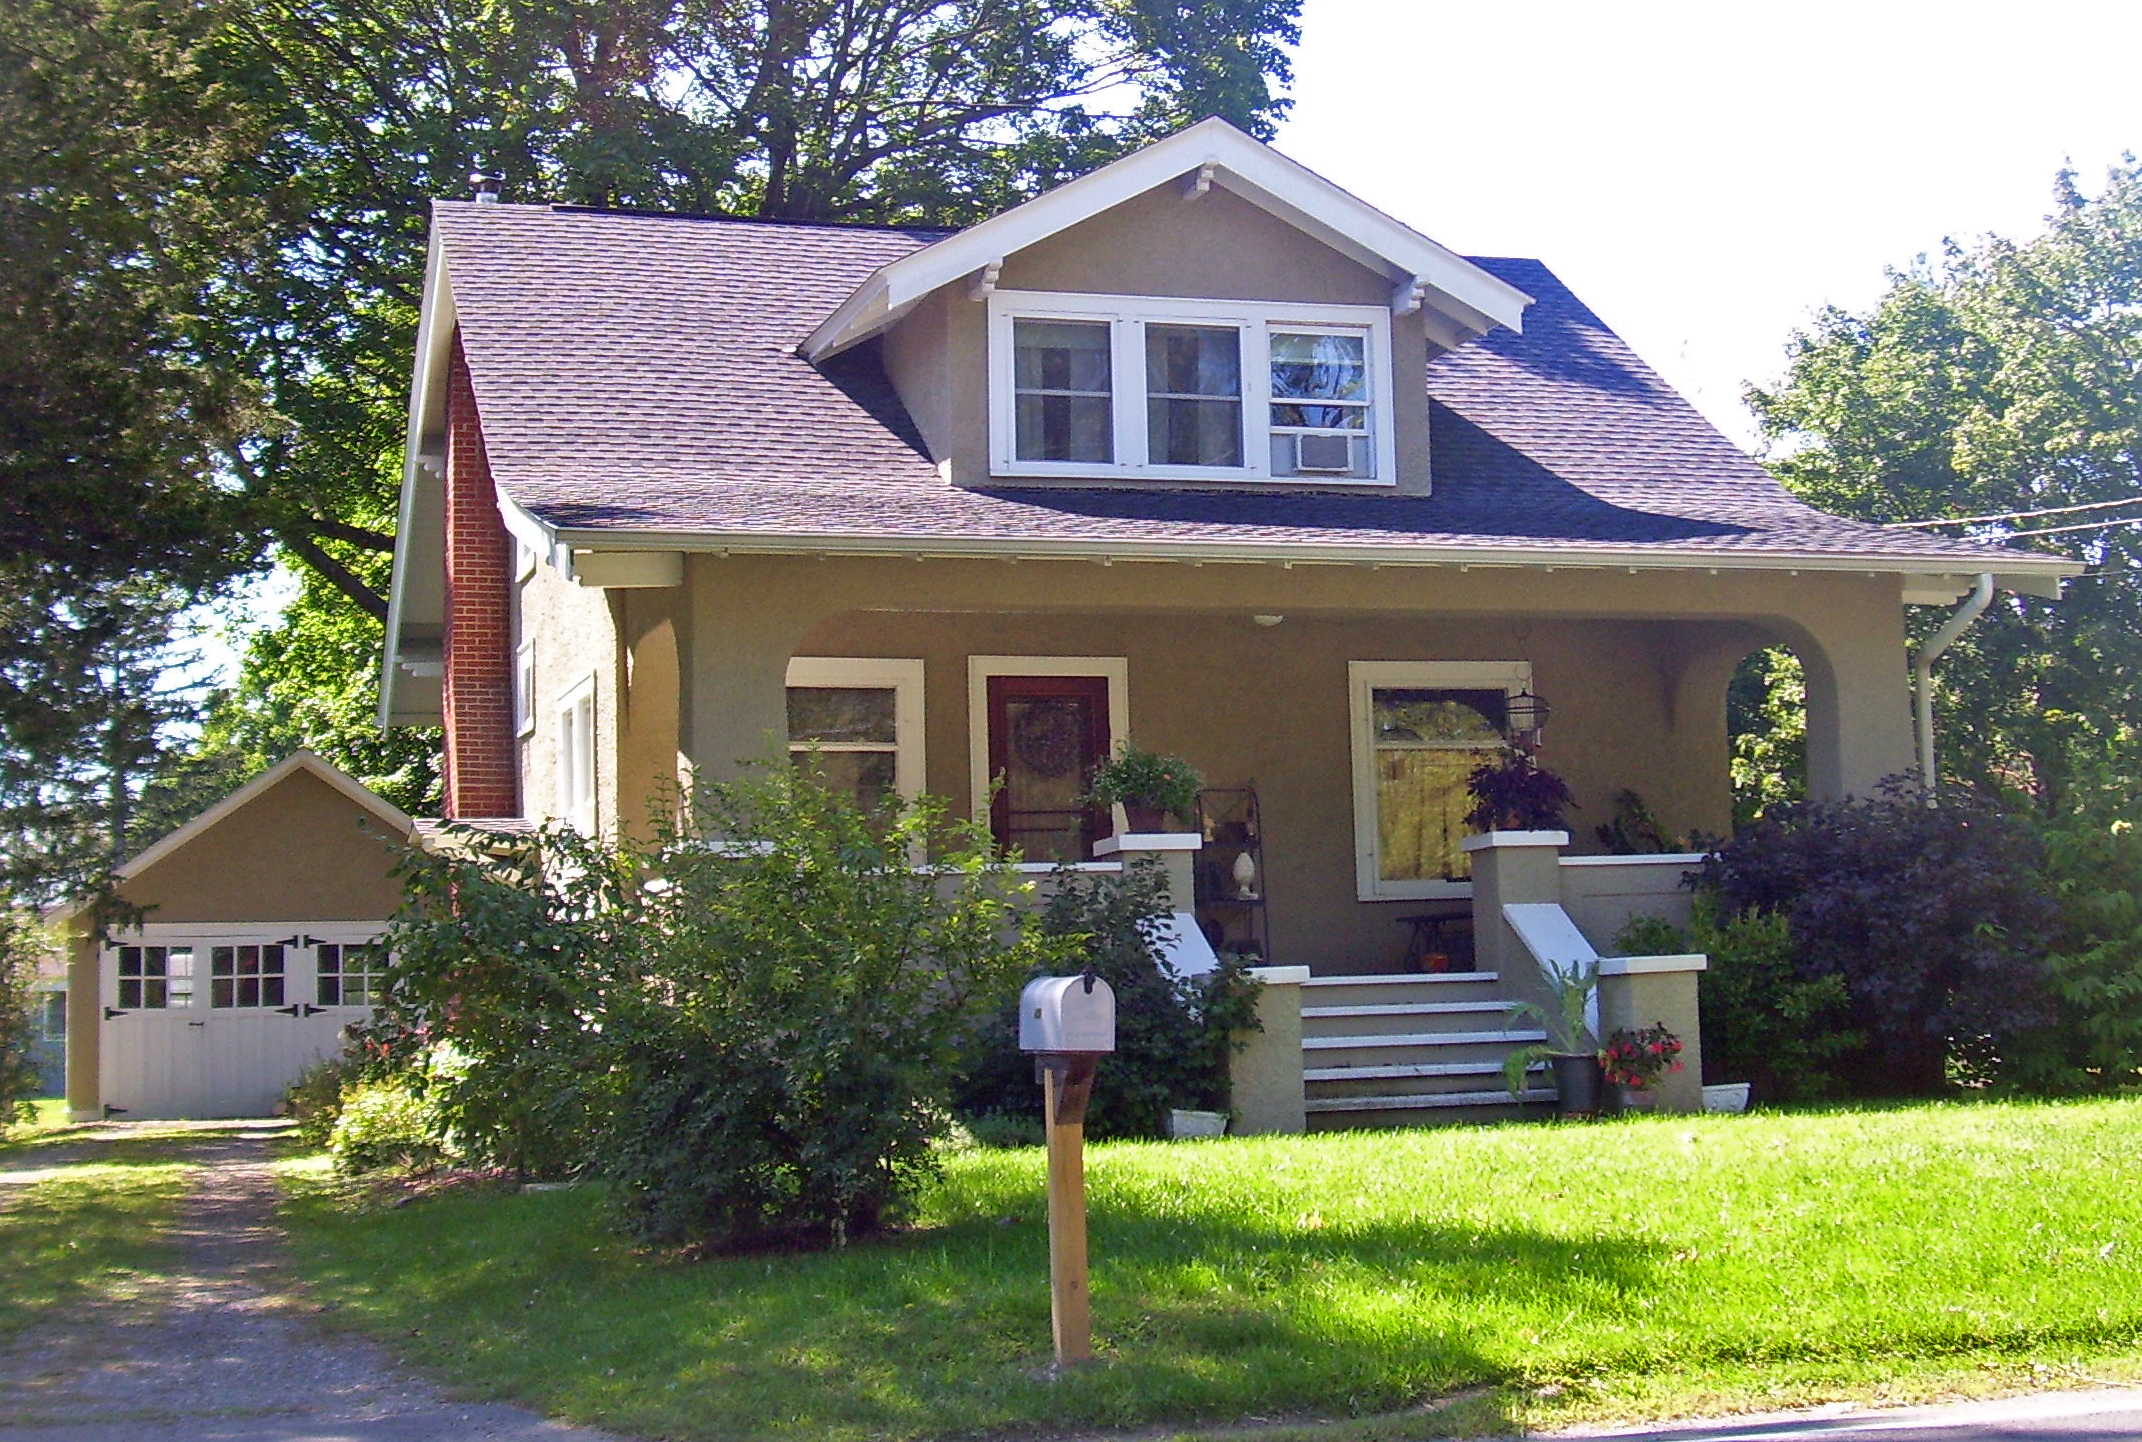 File:Harriet Phillips Bungalow.jpg - Wikimedia Commons